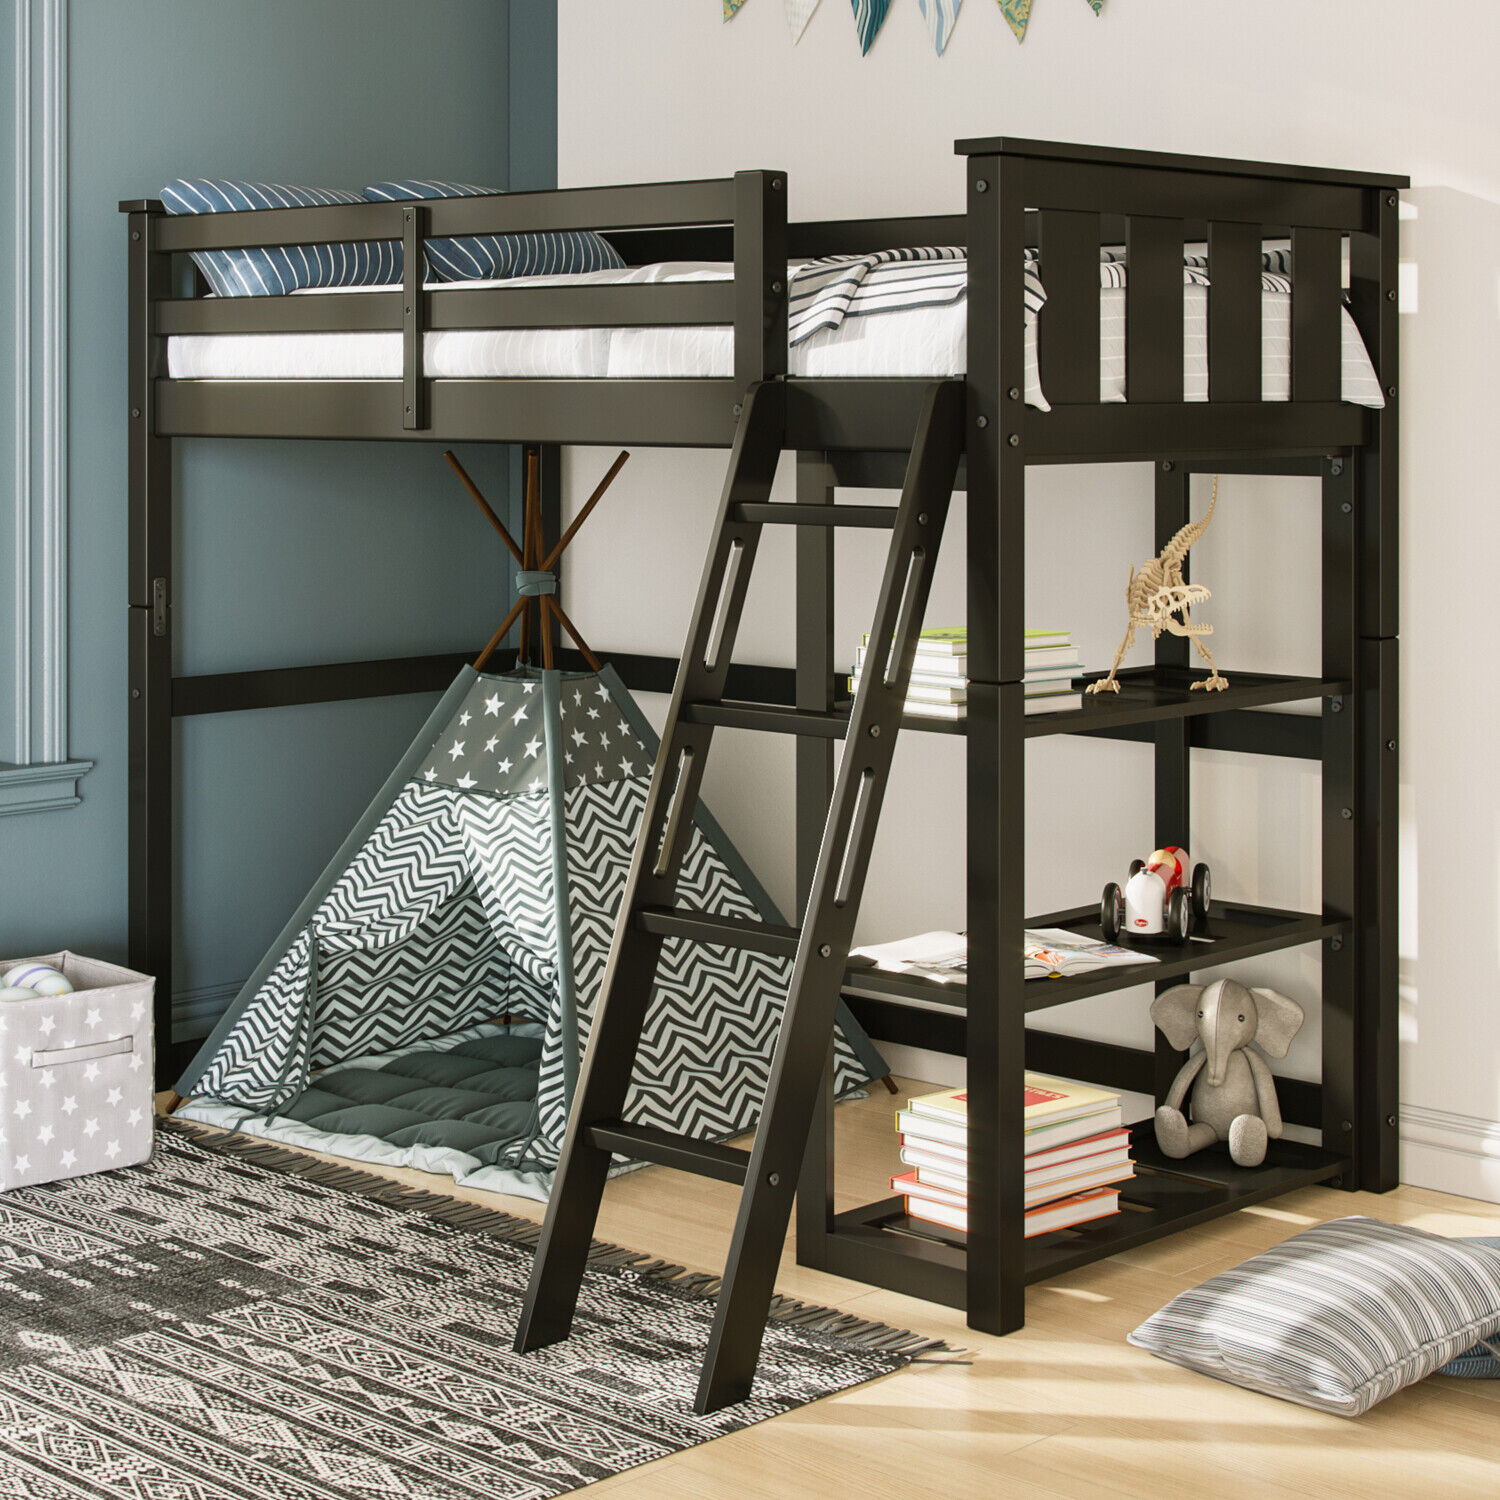 Twin Sized Kids Bed Headboard Nighstand Set W Drawers Home Bedroom Furniture For Sale Online Ebay